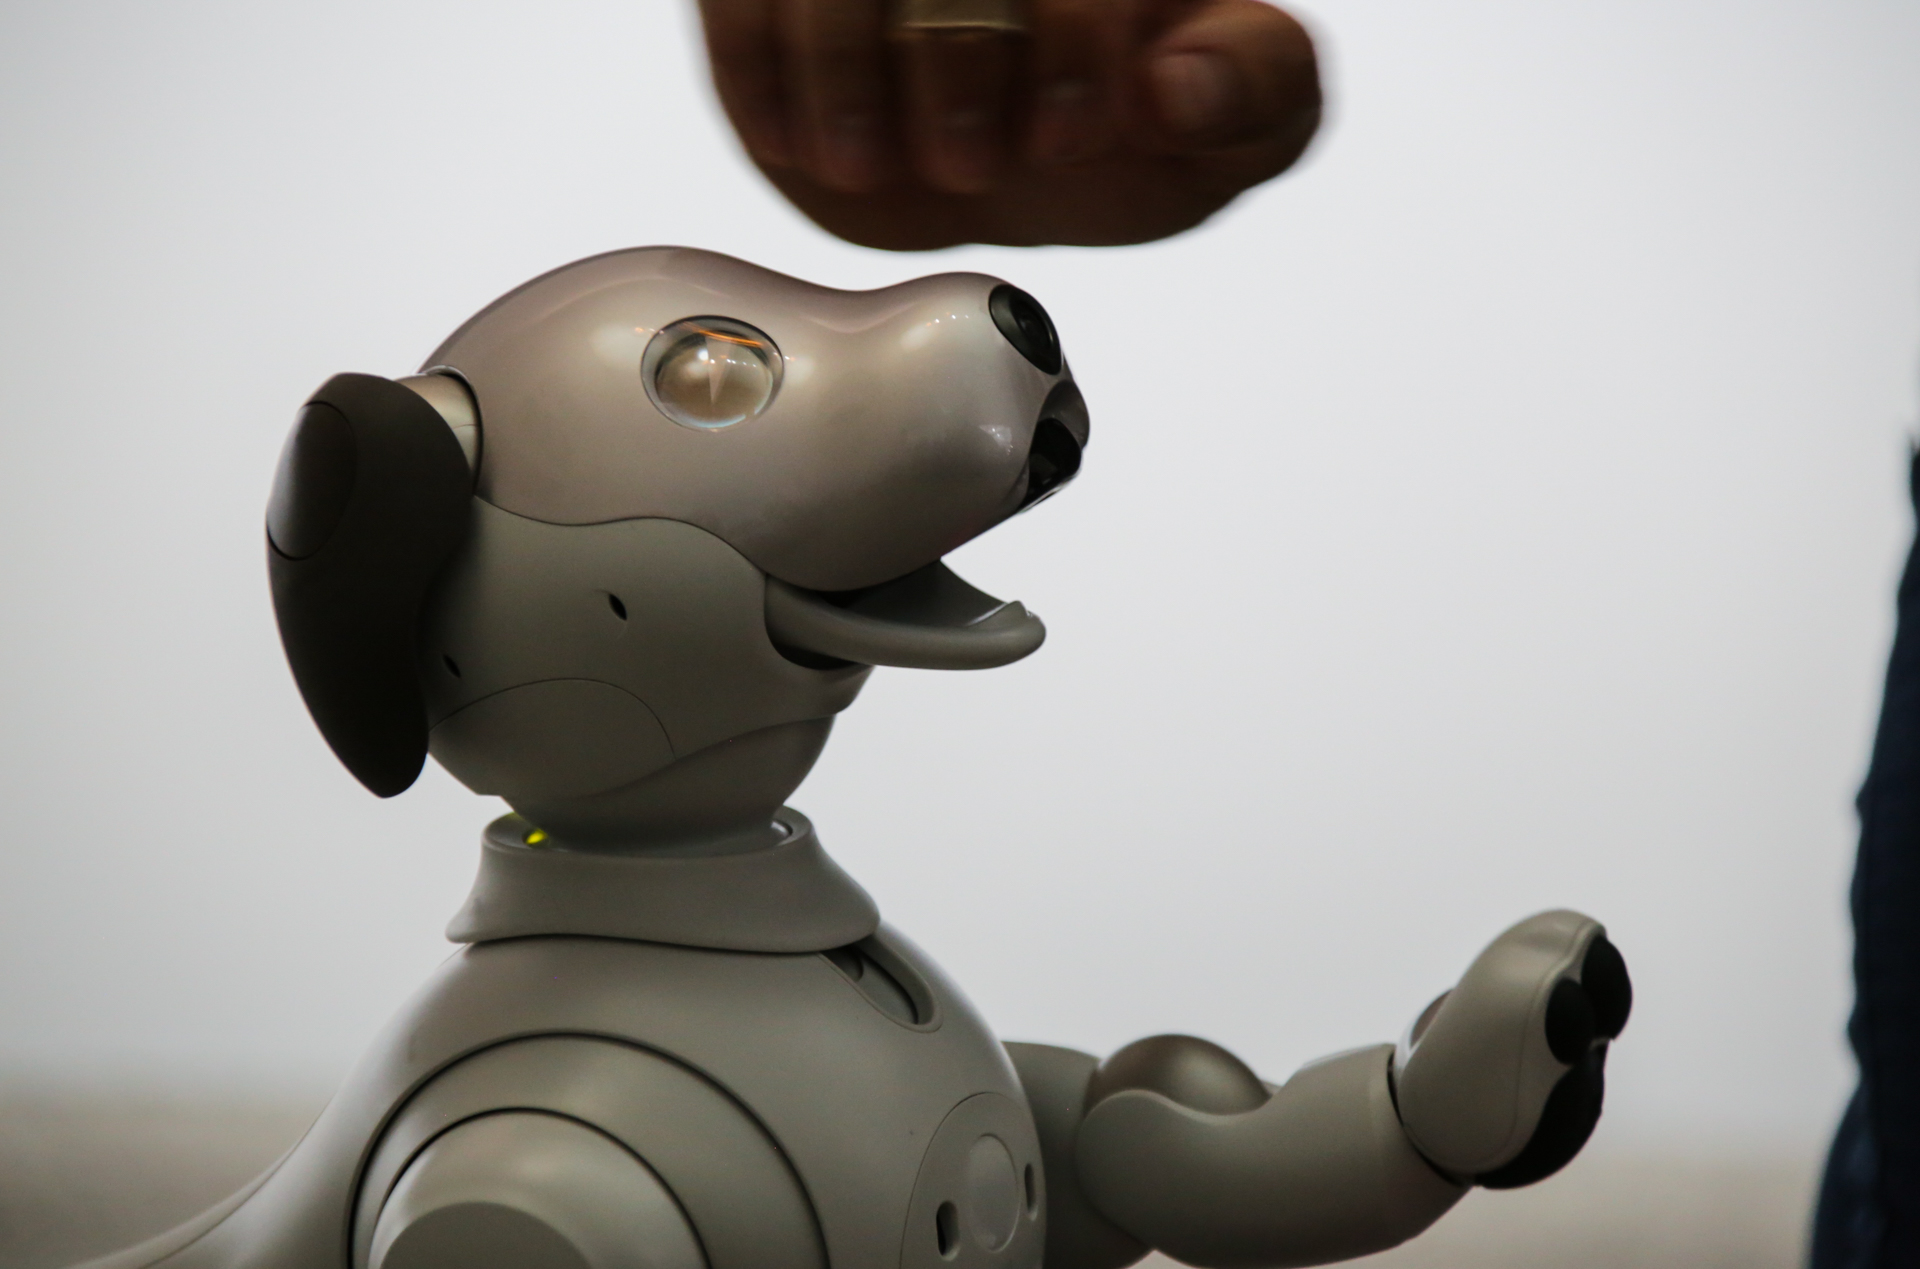 Sony's adorable new Aibo comes to the US in Sept, priced at $2,899